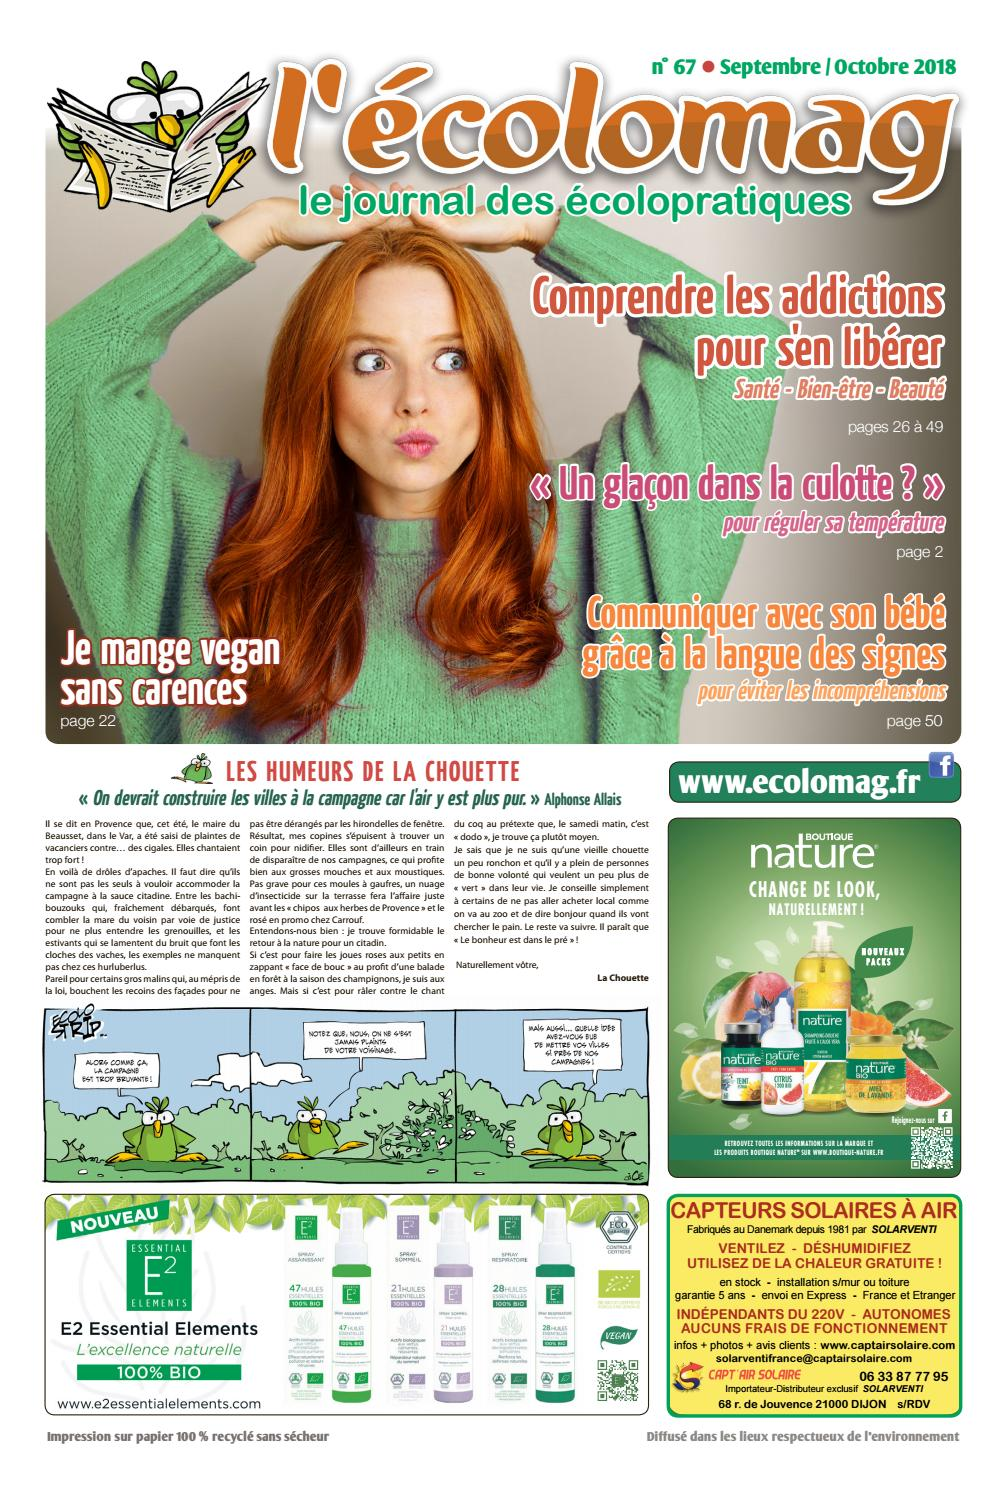 L Ecolomag n°67 by L Ecolomag - issuu d537853cb1cb